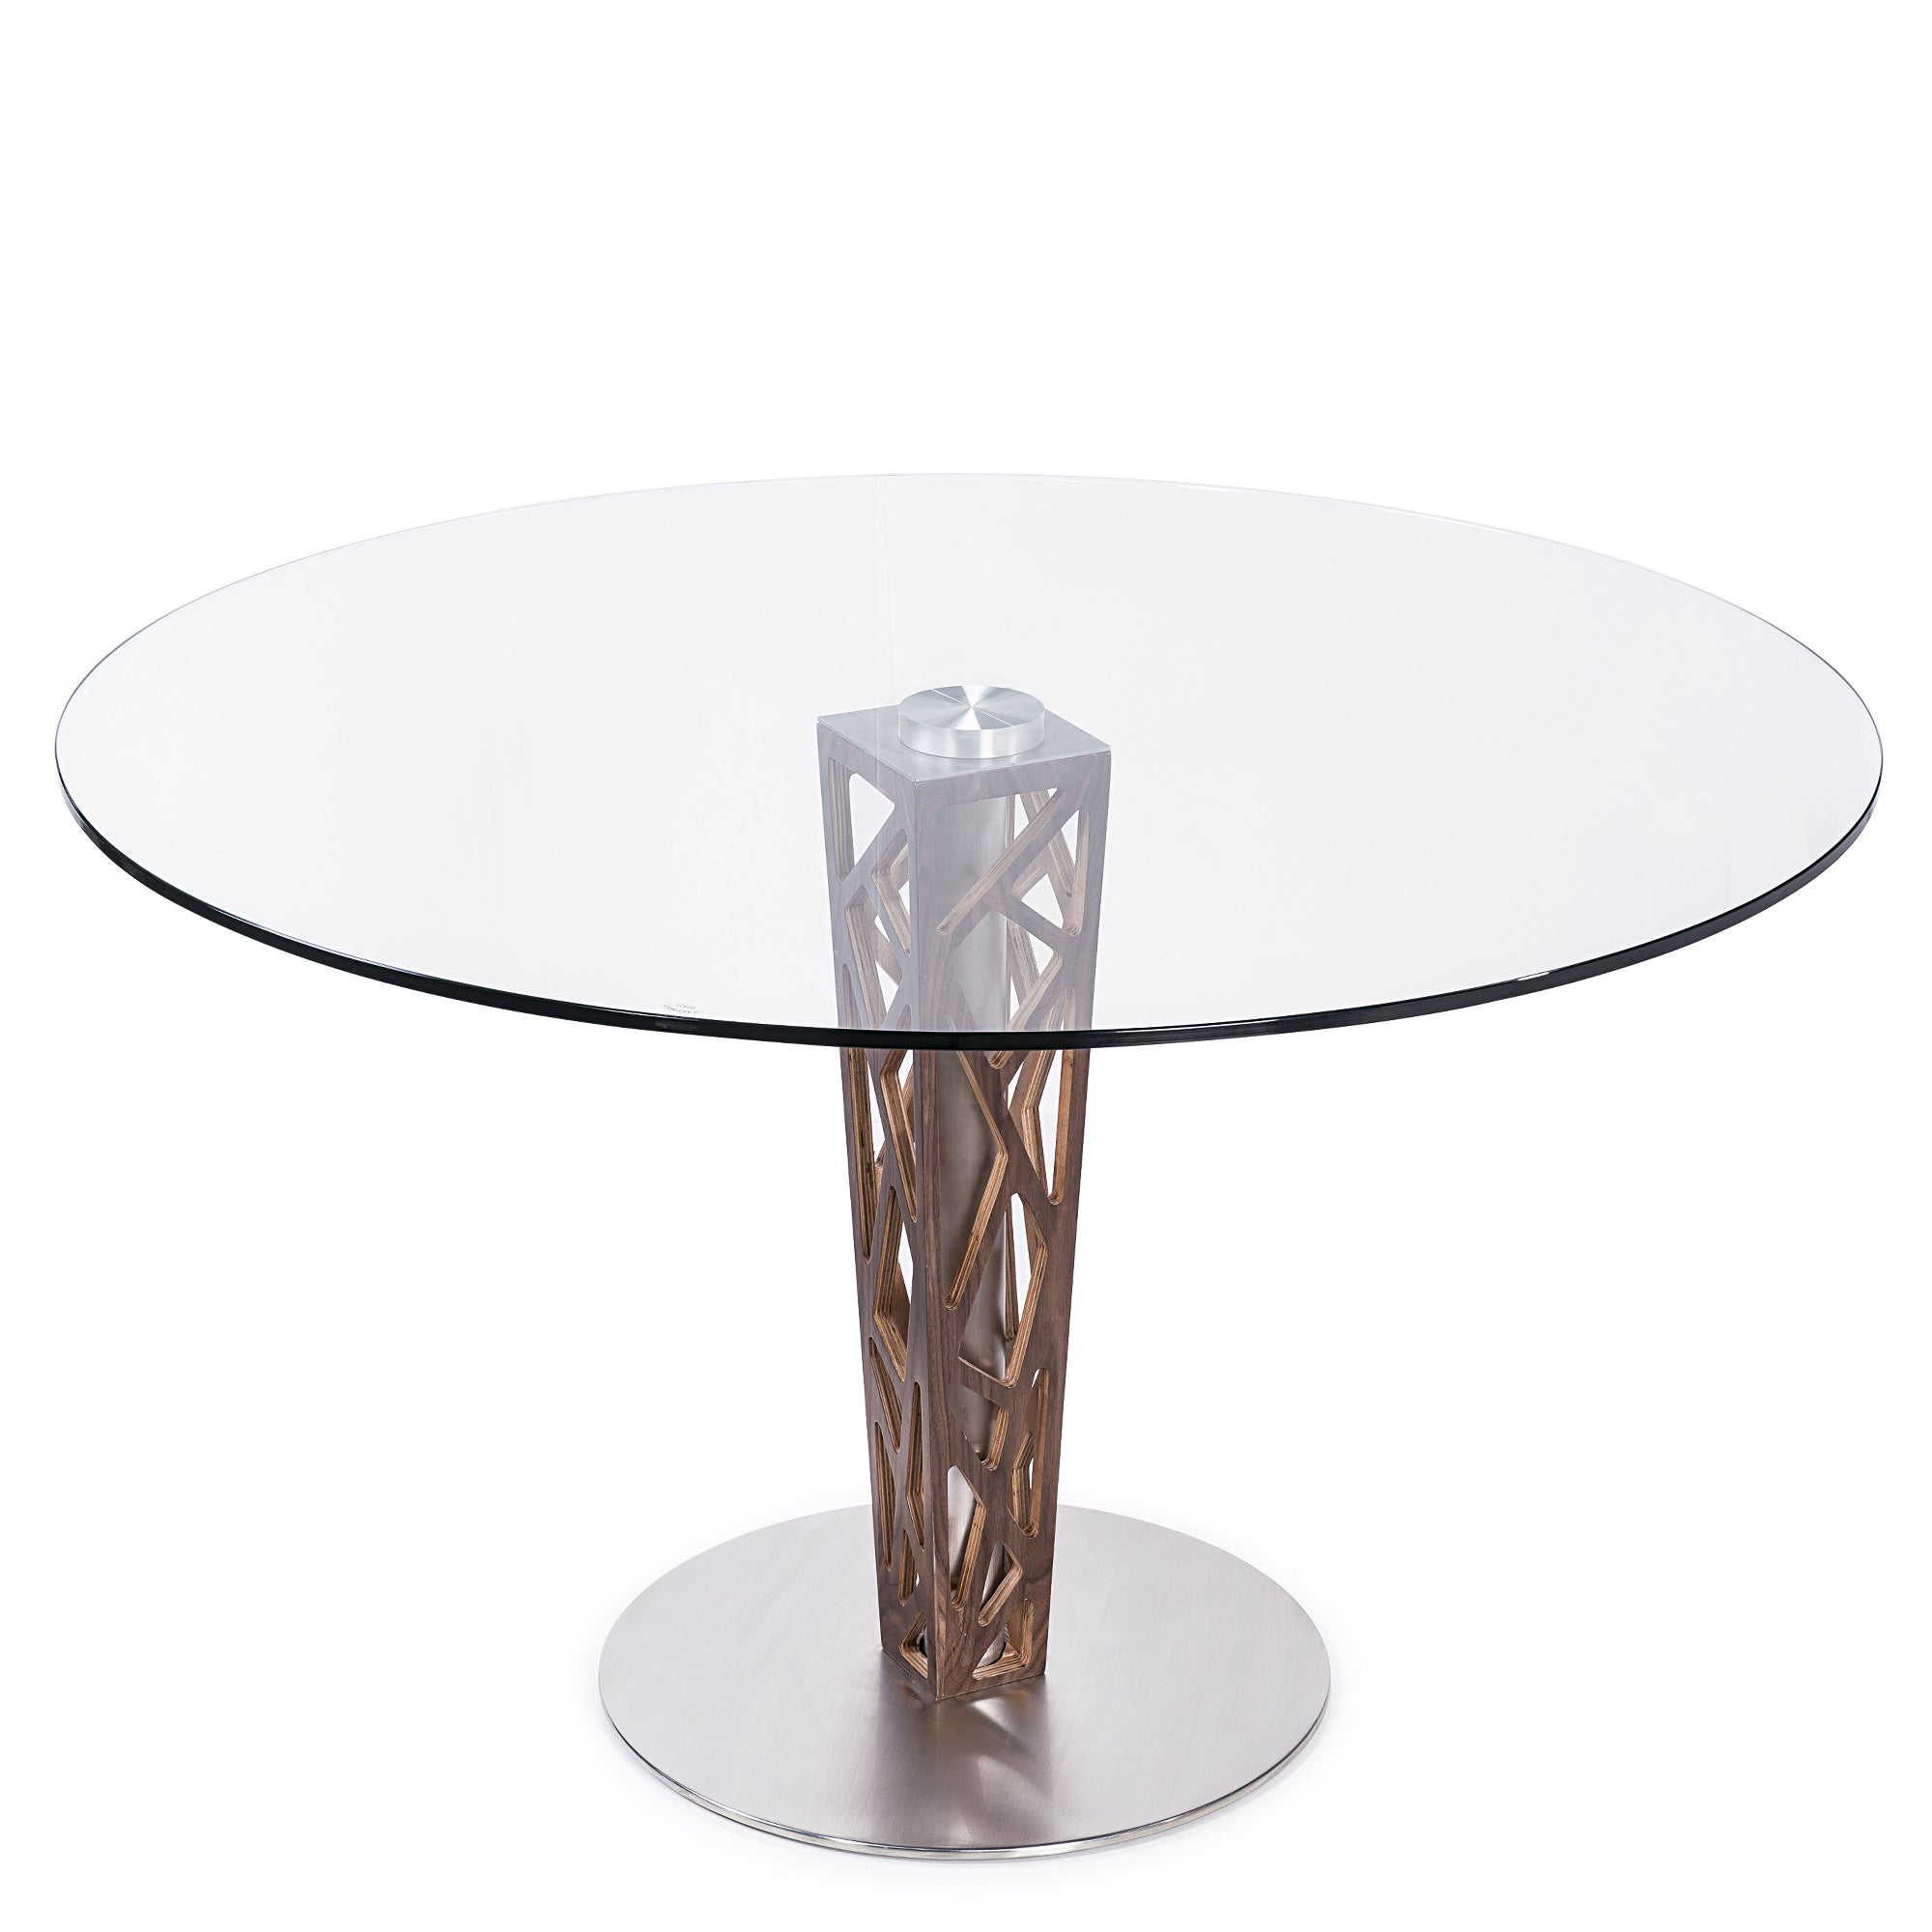 Armen Living Round Dining Table Walnut Veneer Column Brushed Stainless Steel Clear Tempered Glass Top C